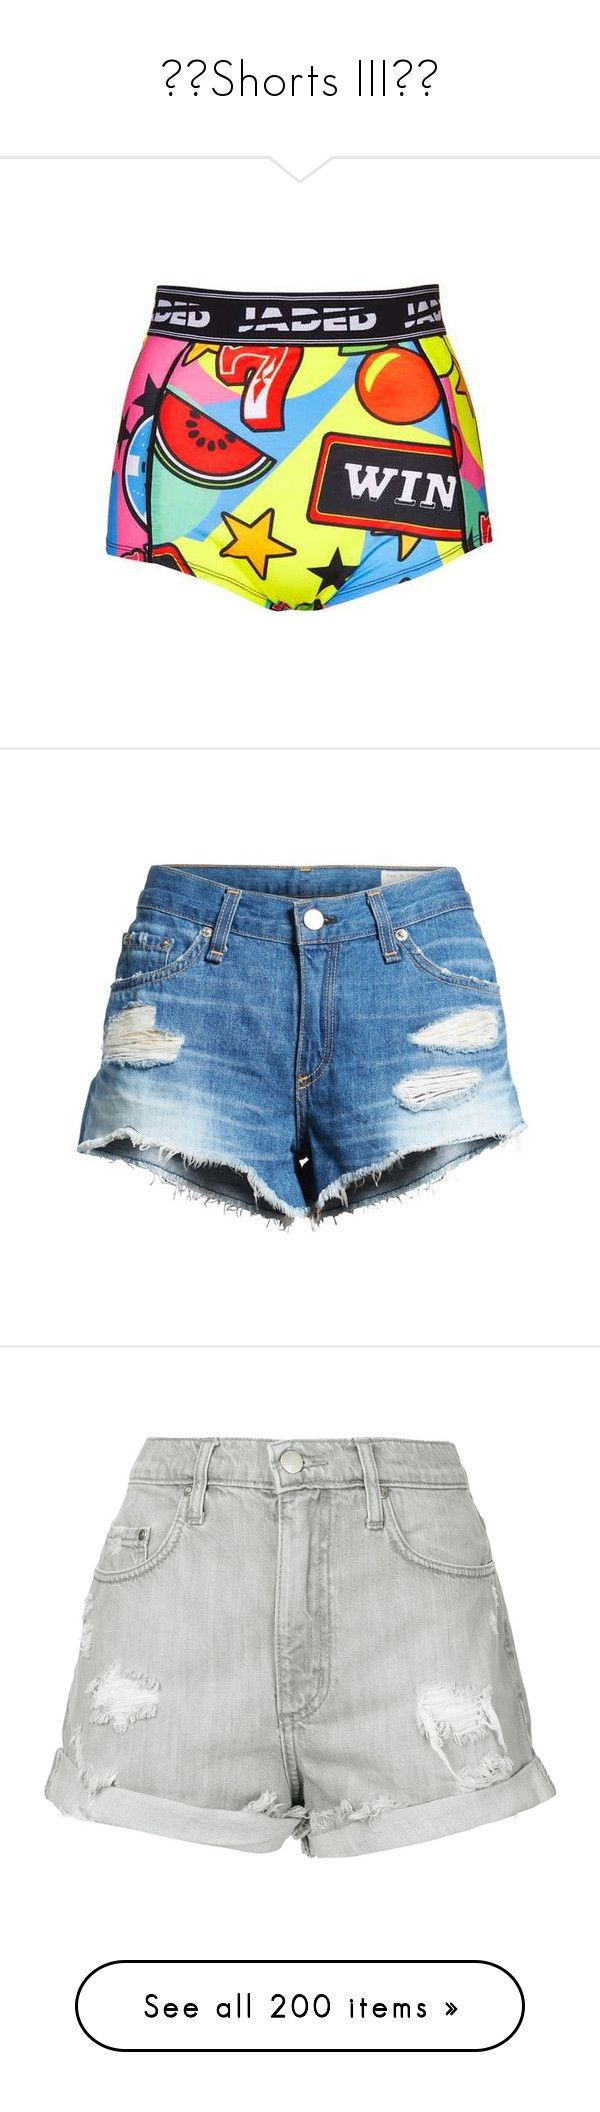 """♥️Shorts III♥️"" by celesteneo ❤ liked on Polyvore featuring intimates, shorts, high waisted knickers, freeport, cut-off jean shorts, distressed jean shorts, denim shorts, denim cut-off shorts, distressed denim shorts and grey"